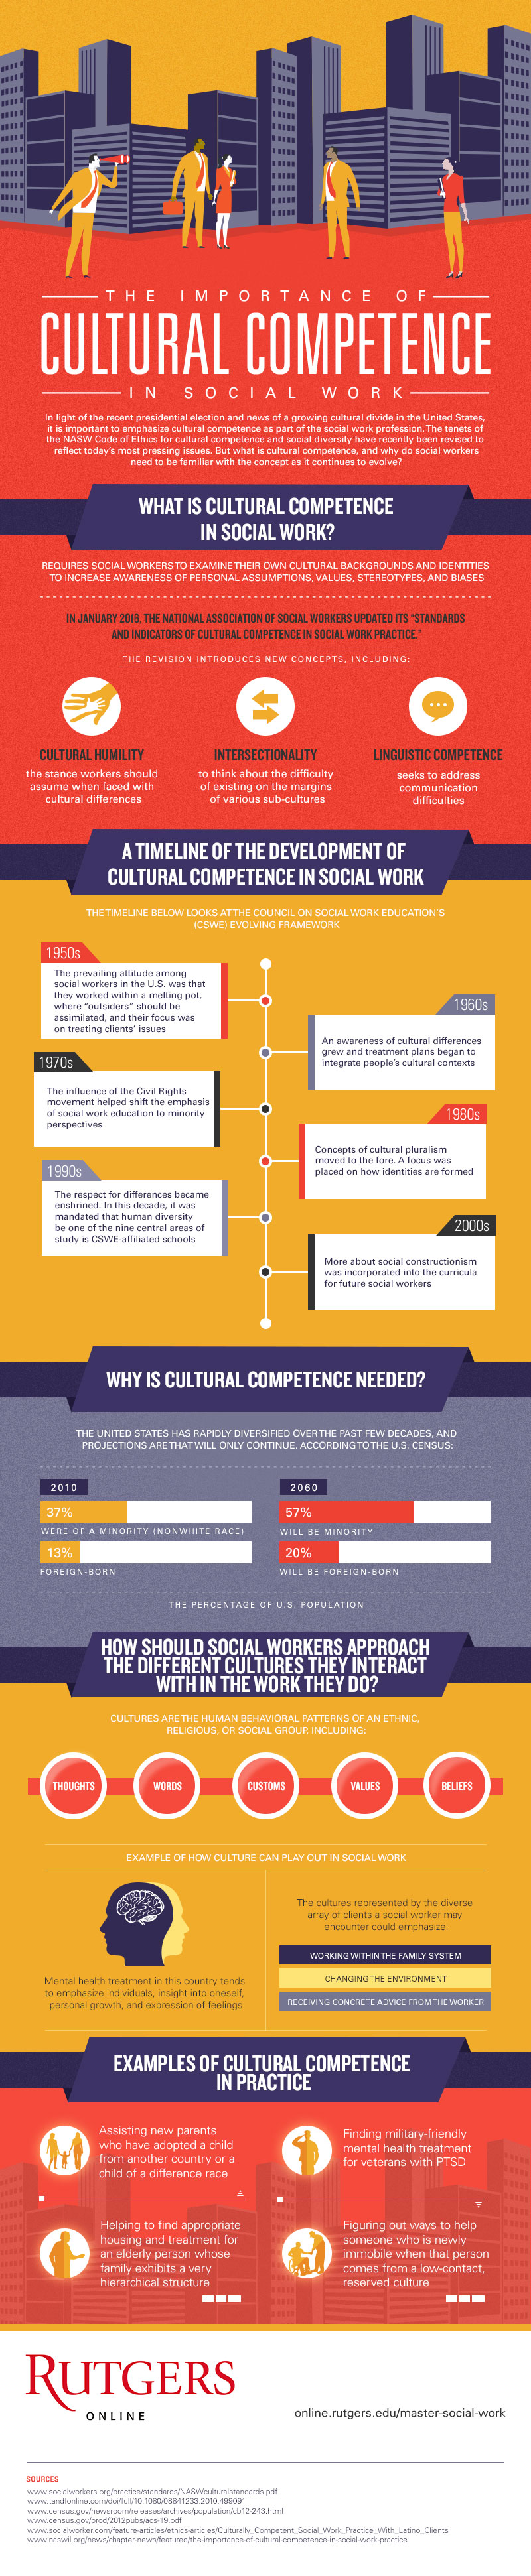 RU-MSW4-The-Importance-of-Cultural-Competence-in-Social-Work